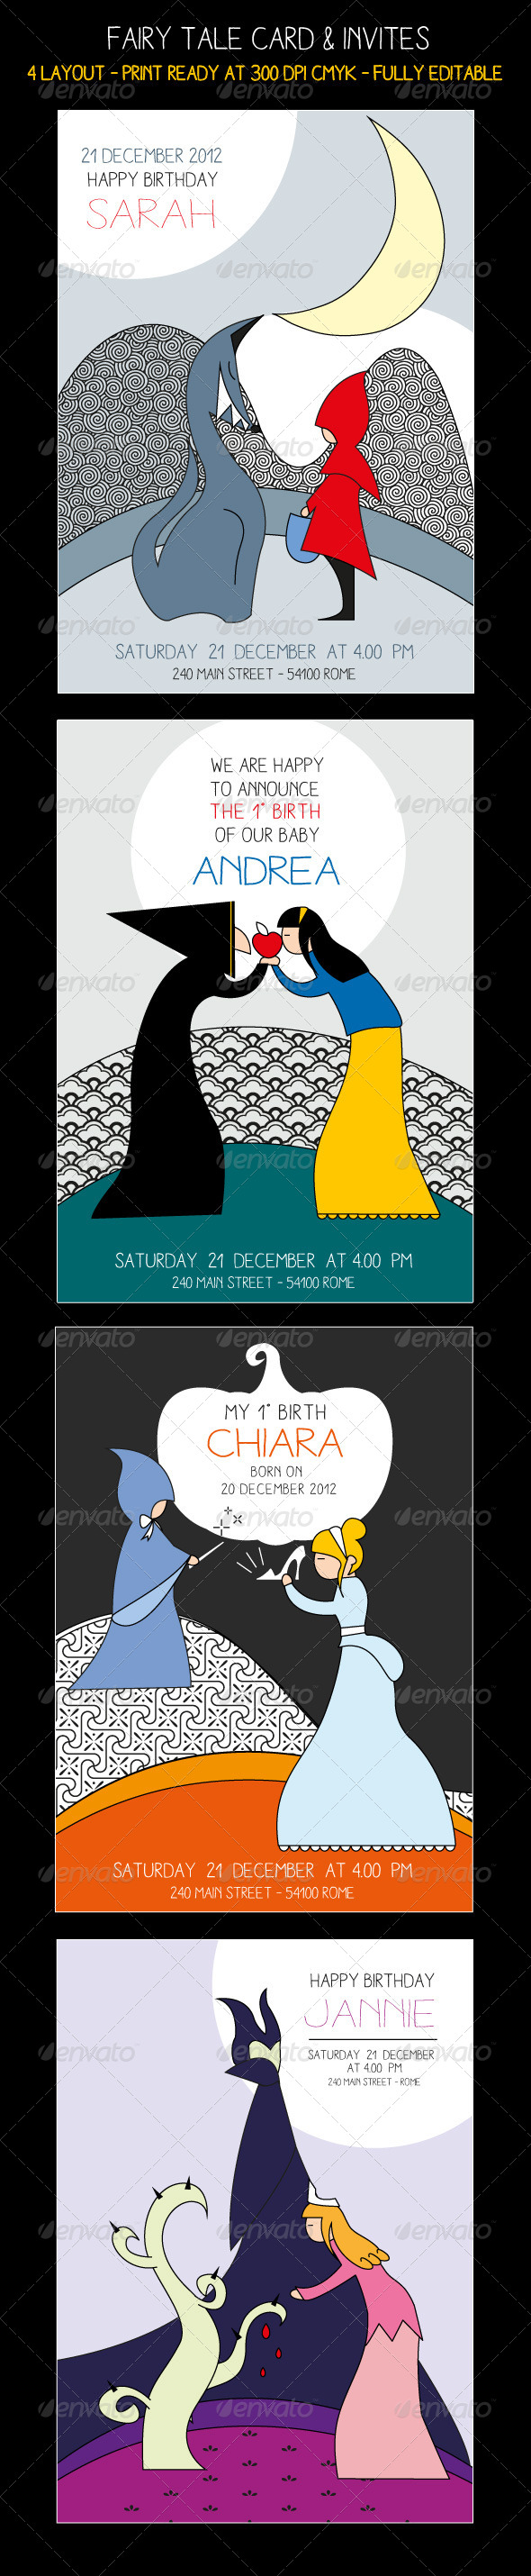 GraphicRiver Fairy Tale Card & Invites 6295962